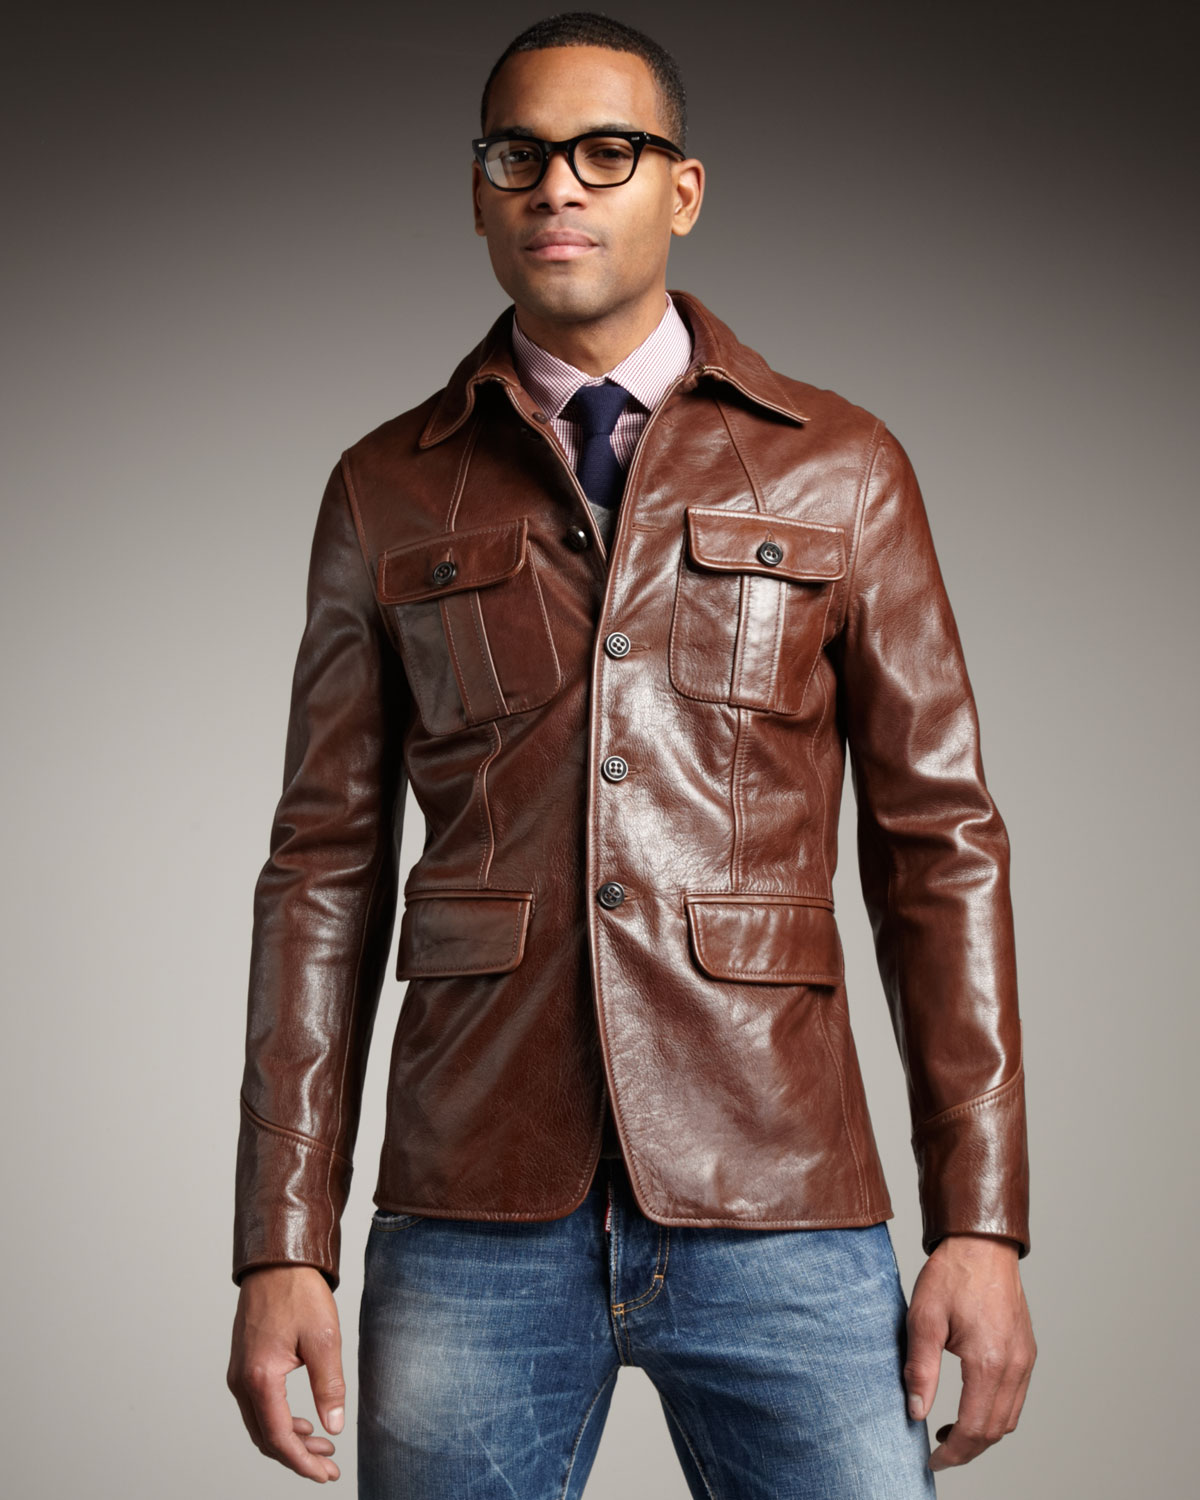 Lyst - Dsquared² Leather Military Jacket in Brown for Men